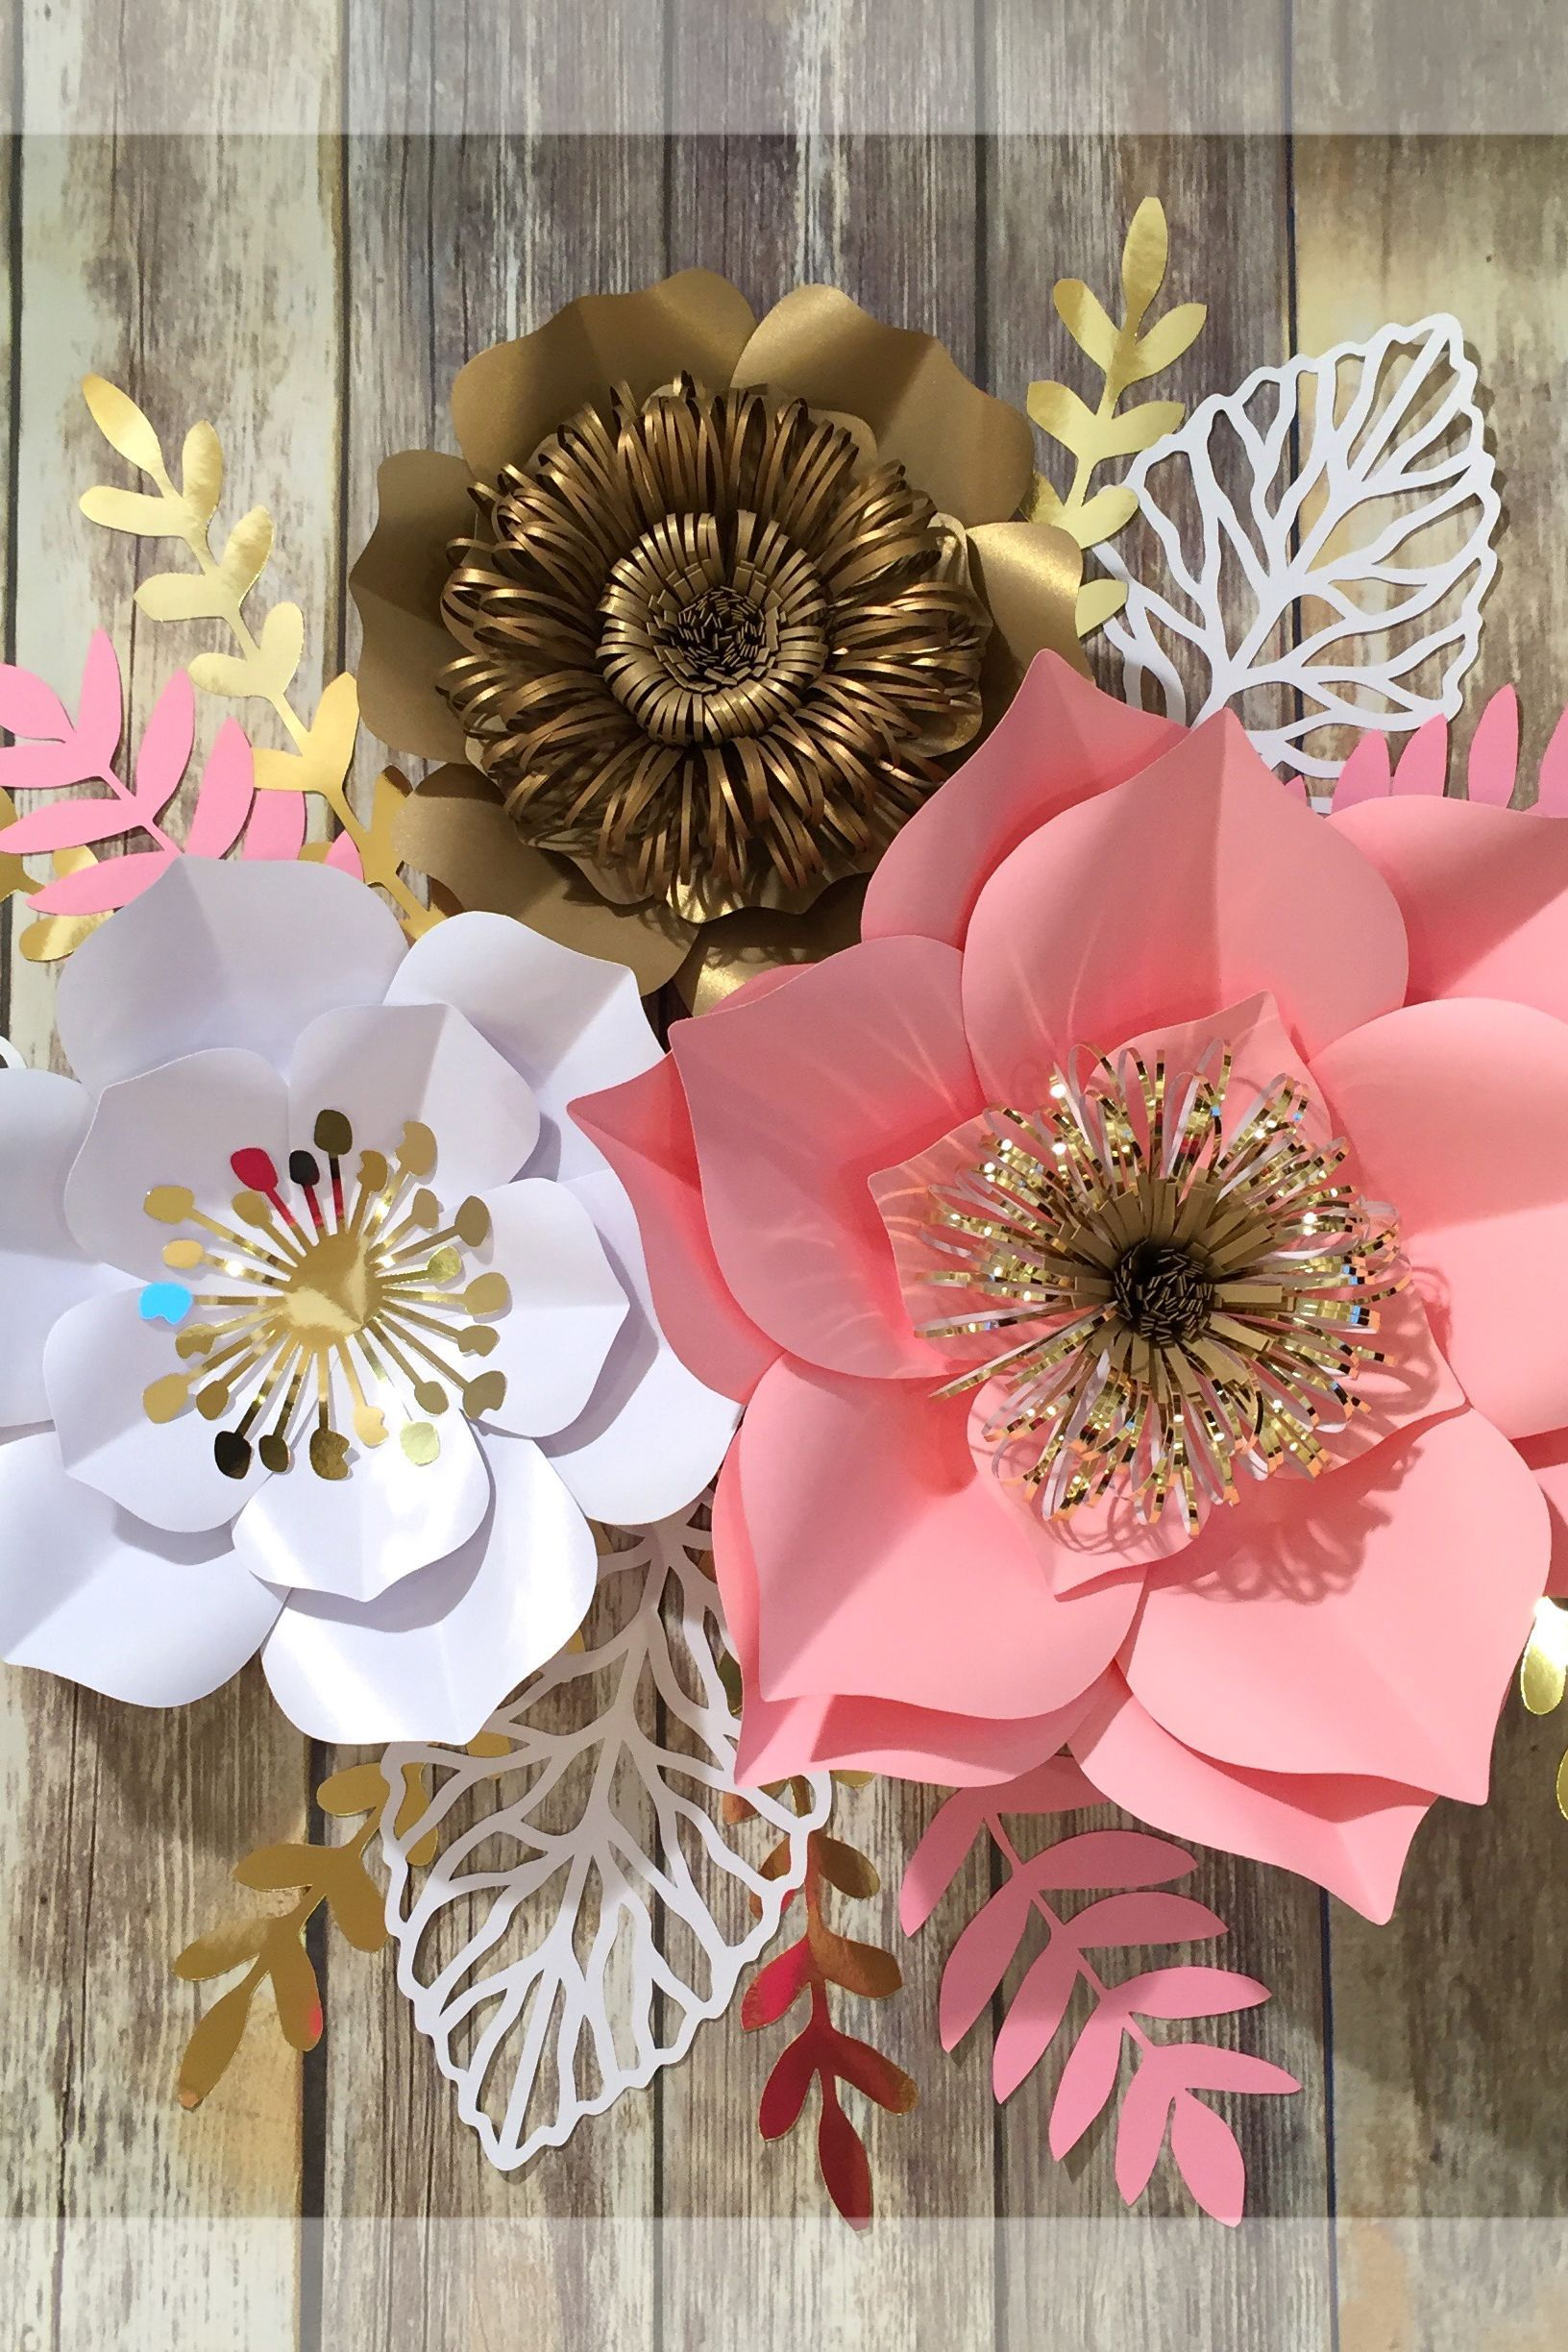 Stupendous Diy Ideas Tissue Paper Flower Wall Decor hobby